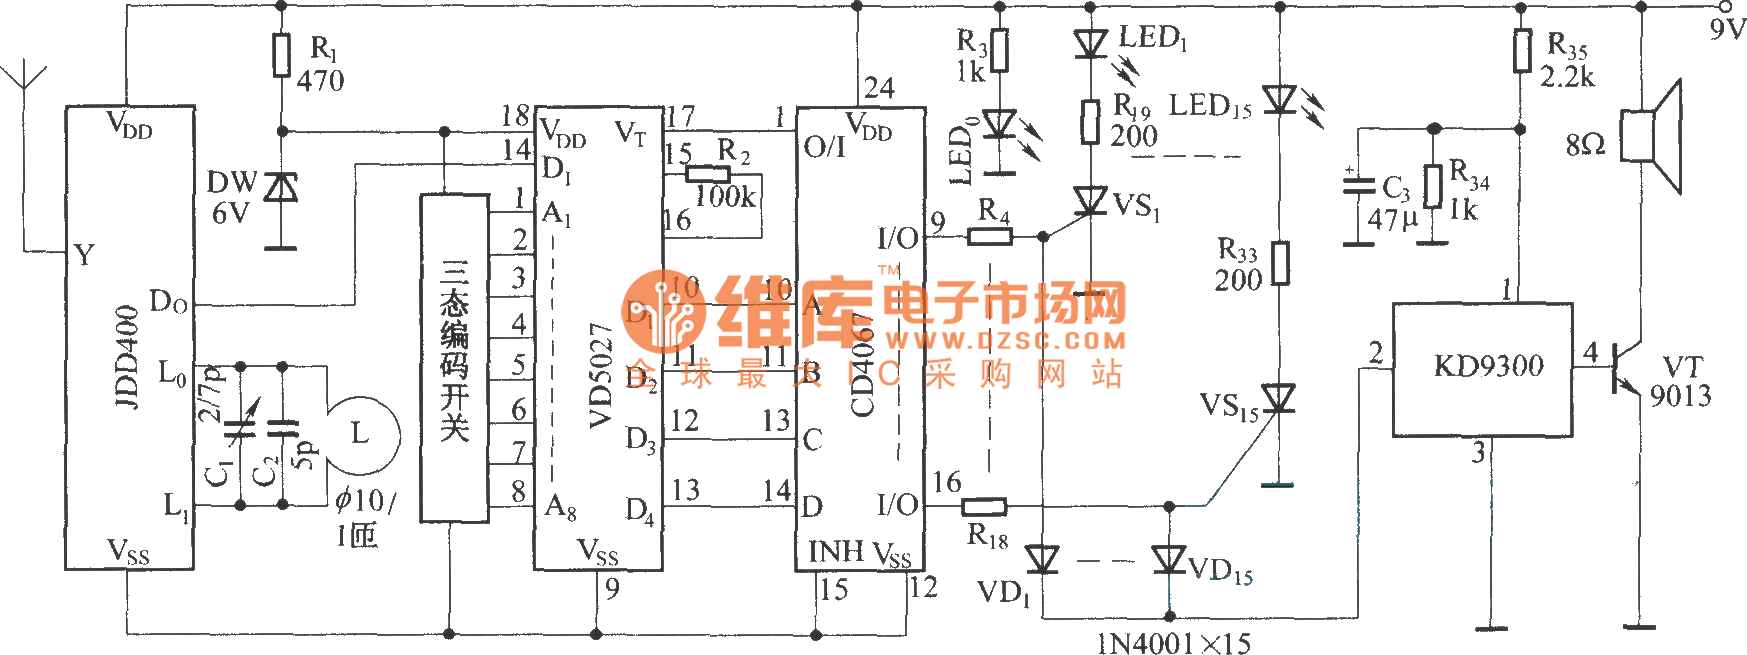 Pyroelectric detection wireless security system circuit diagram